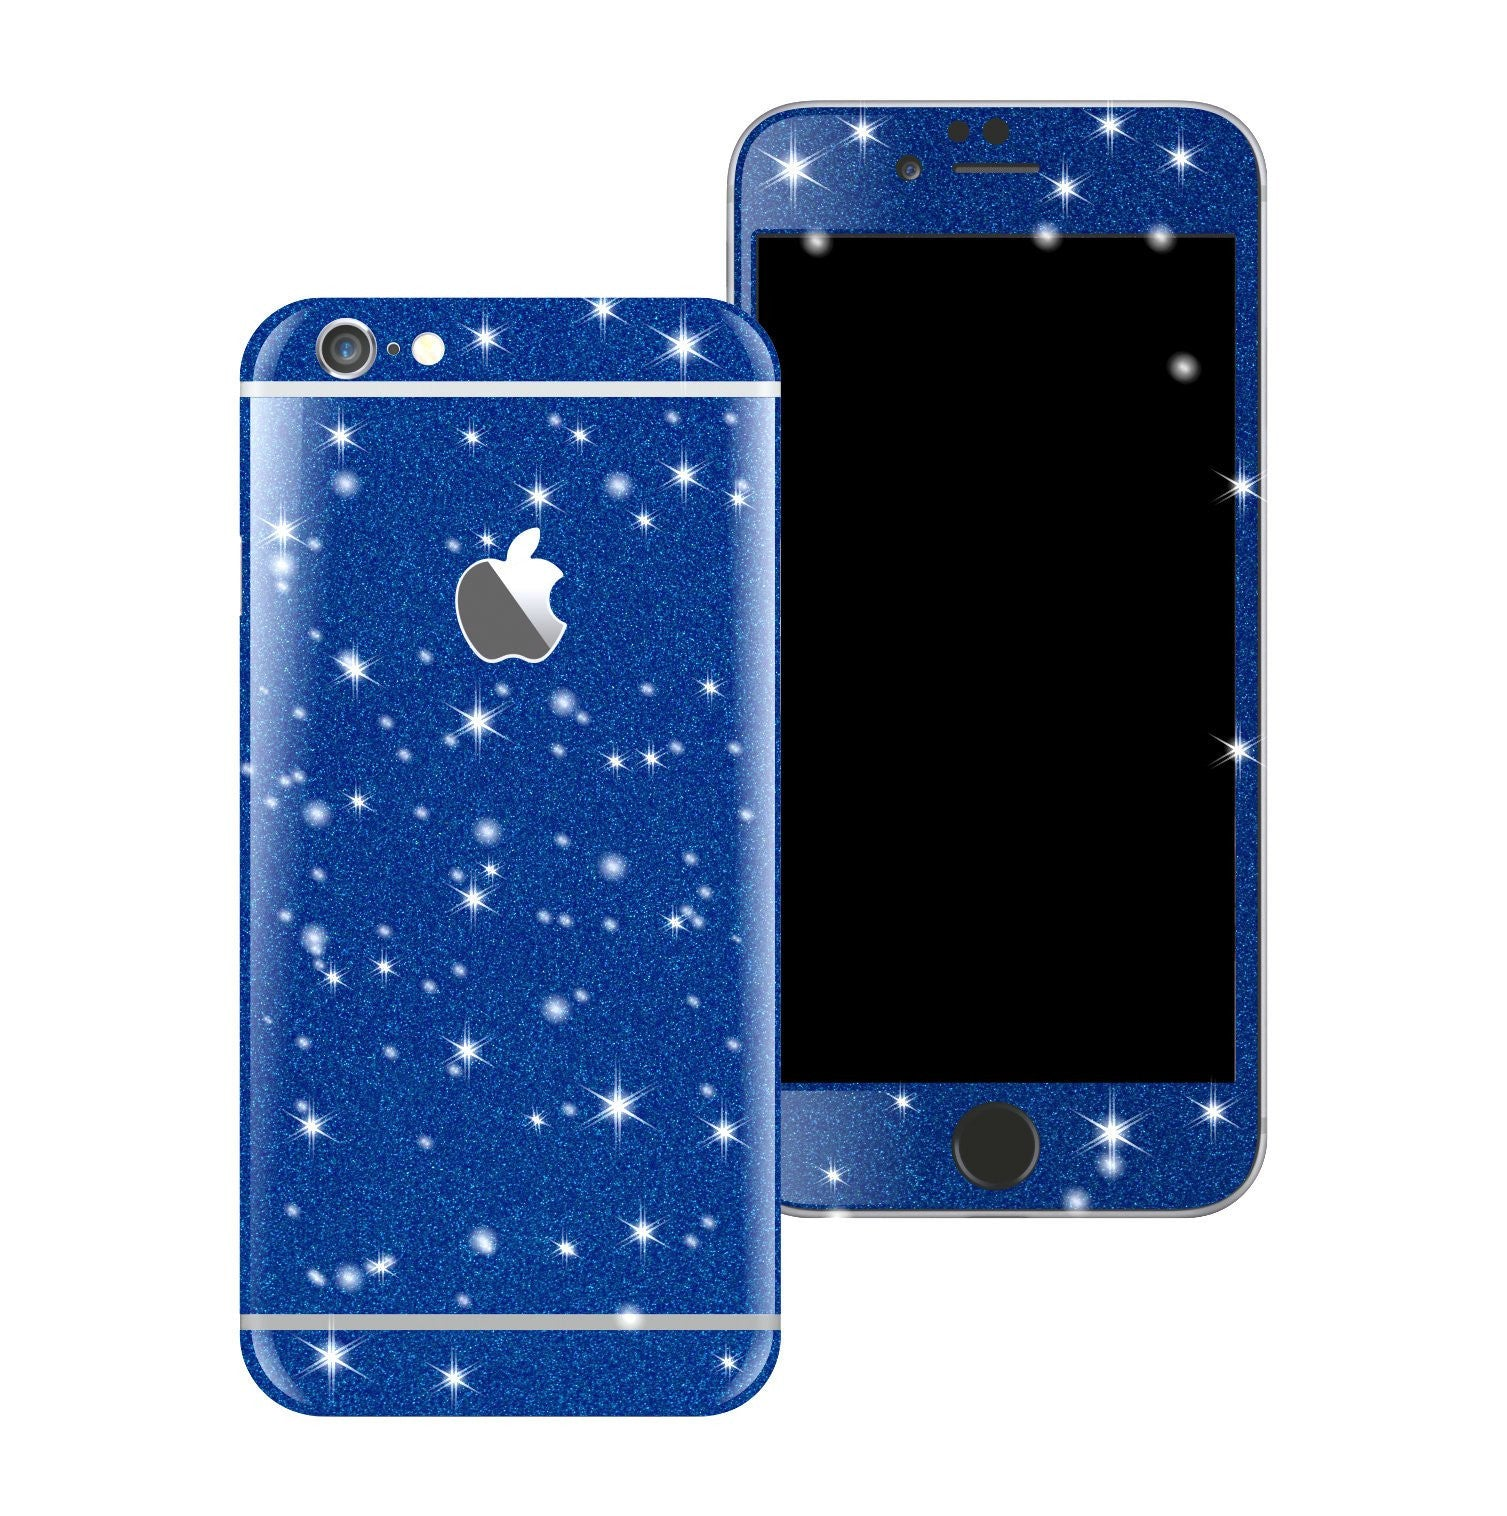 iPhone 6S Diamond BLUE Shimmering Glitter Skin Wrap Sticker Cover Decal Protector by EasySkinz